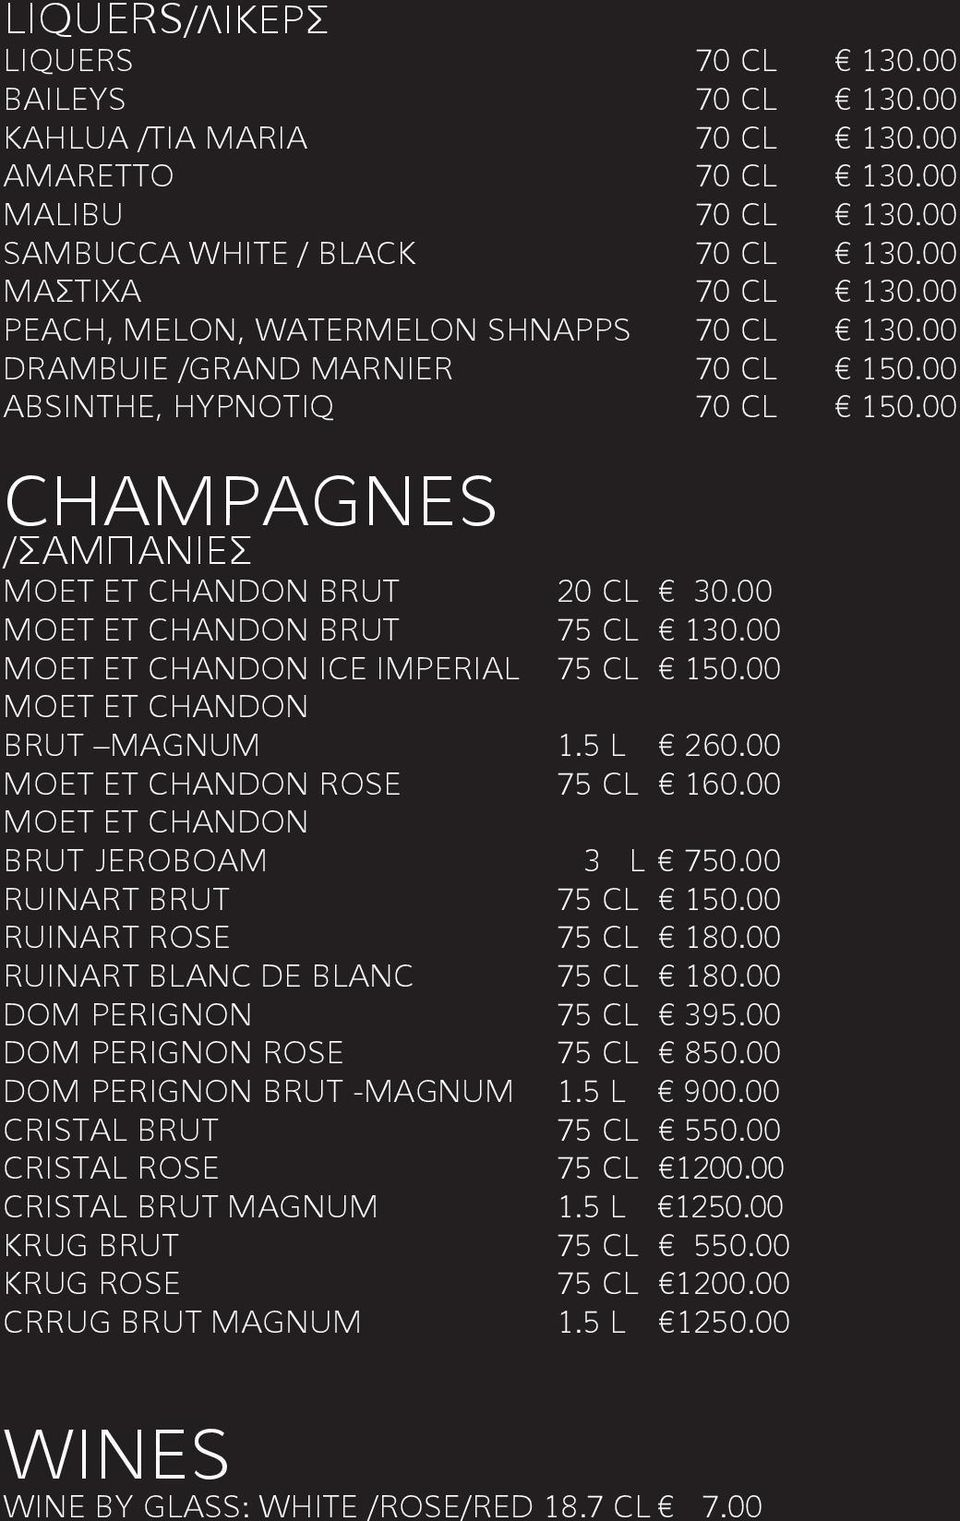 00 MOET ET CHANDON BRUT 75 CL 130.00 MOET ET CHANDON ICE IMPERIAL 75 CL 150.00 MOET ET CHANDON BRUT MAGNUM 1.5 L 260.00 MOET ET CHANDON ROSE 75 CL 160.00 MOET ET CHANDON BRUT JEROBOAM 3 L 750.